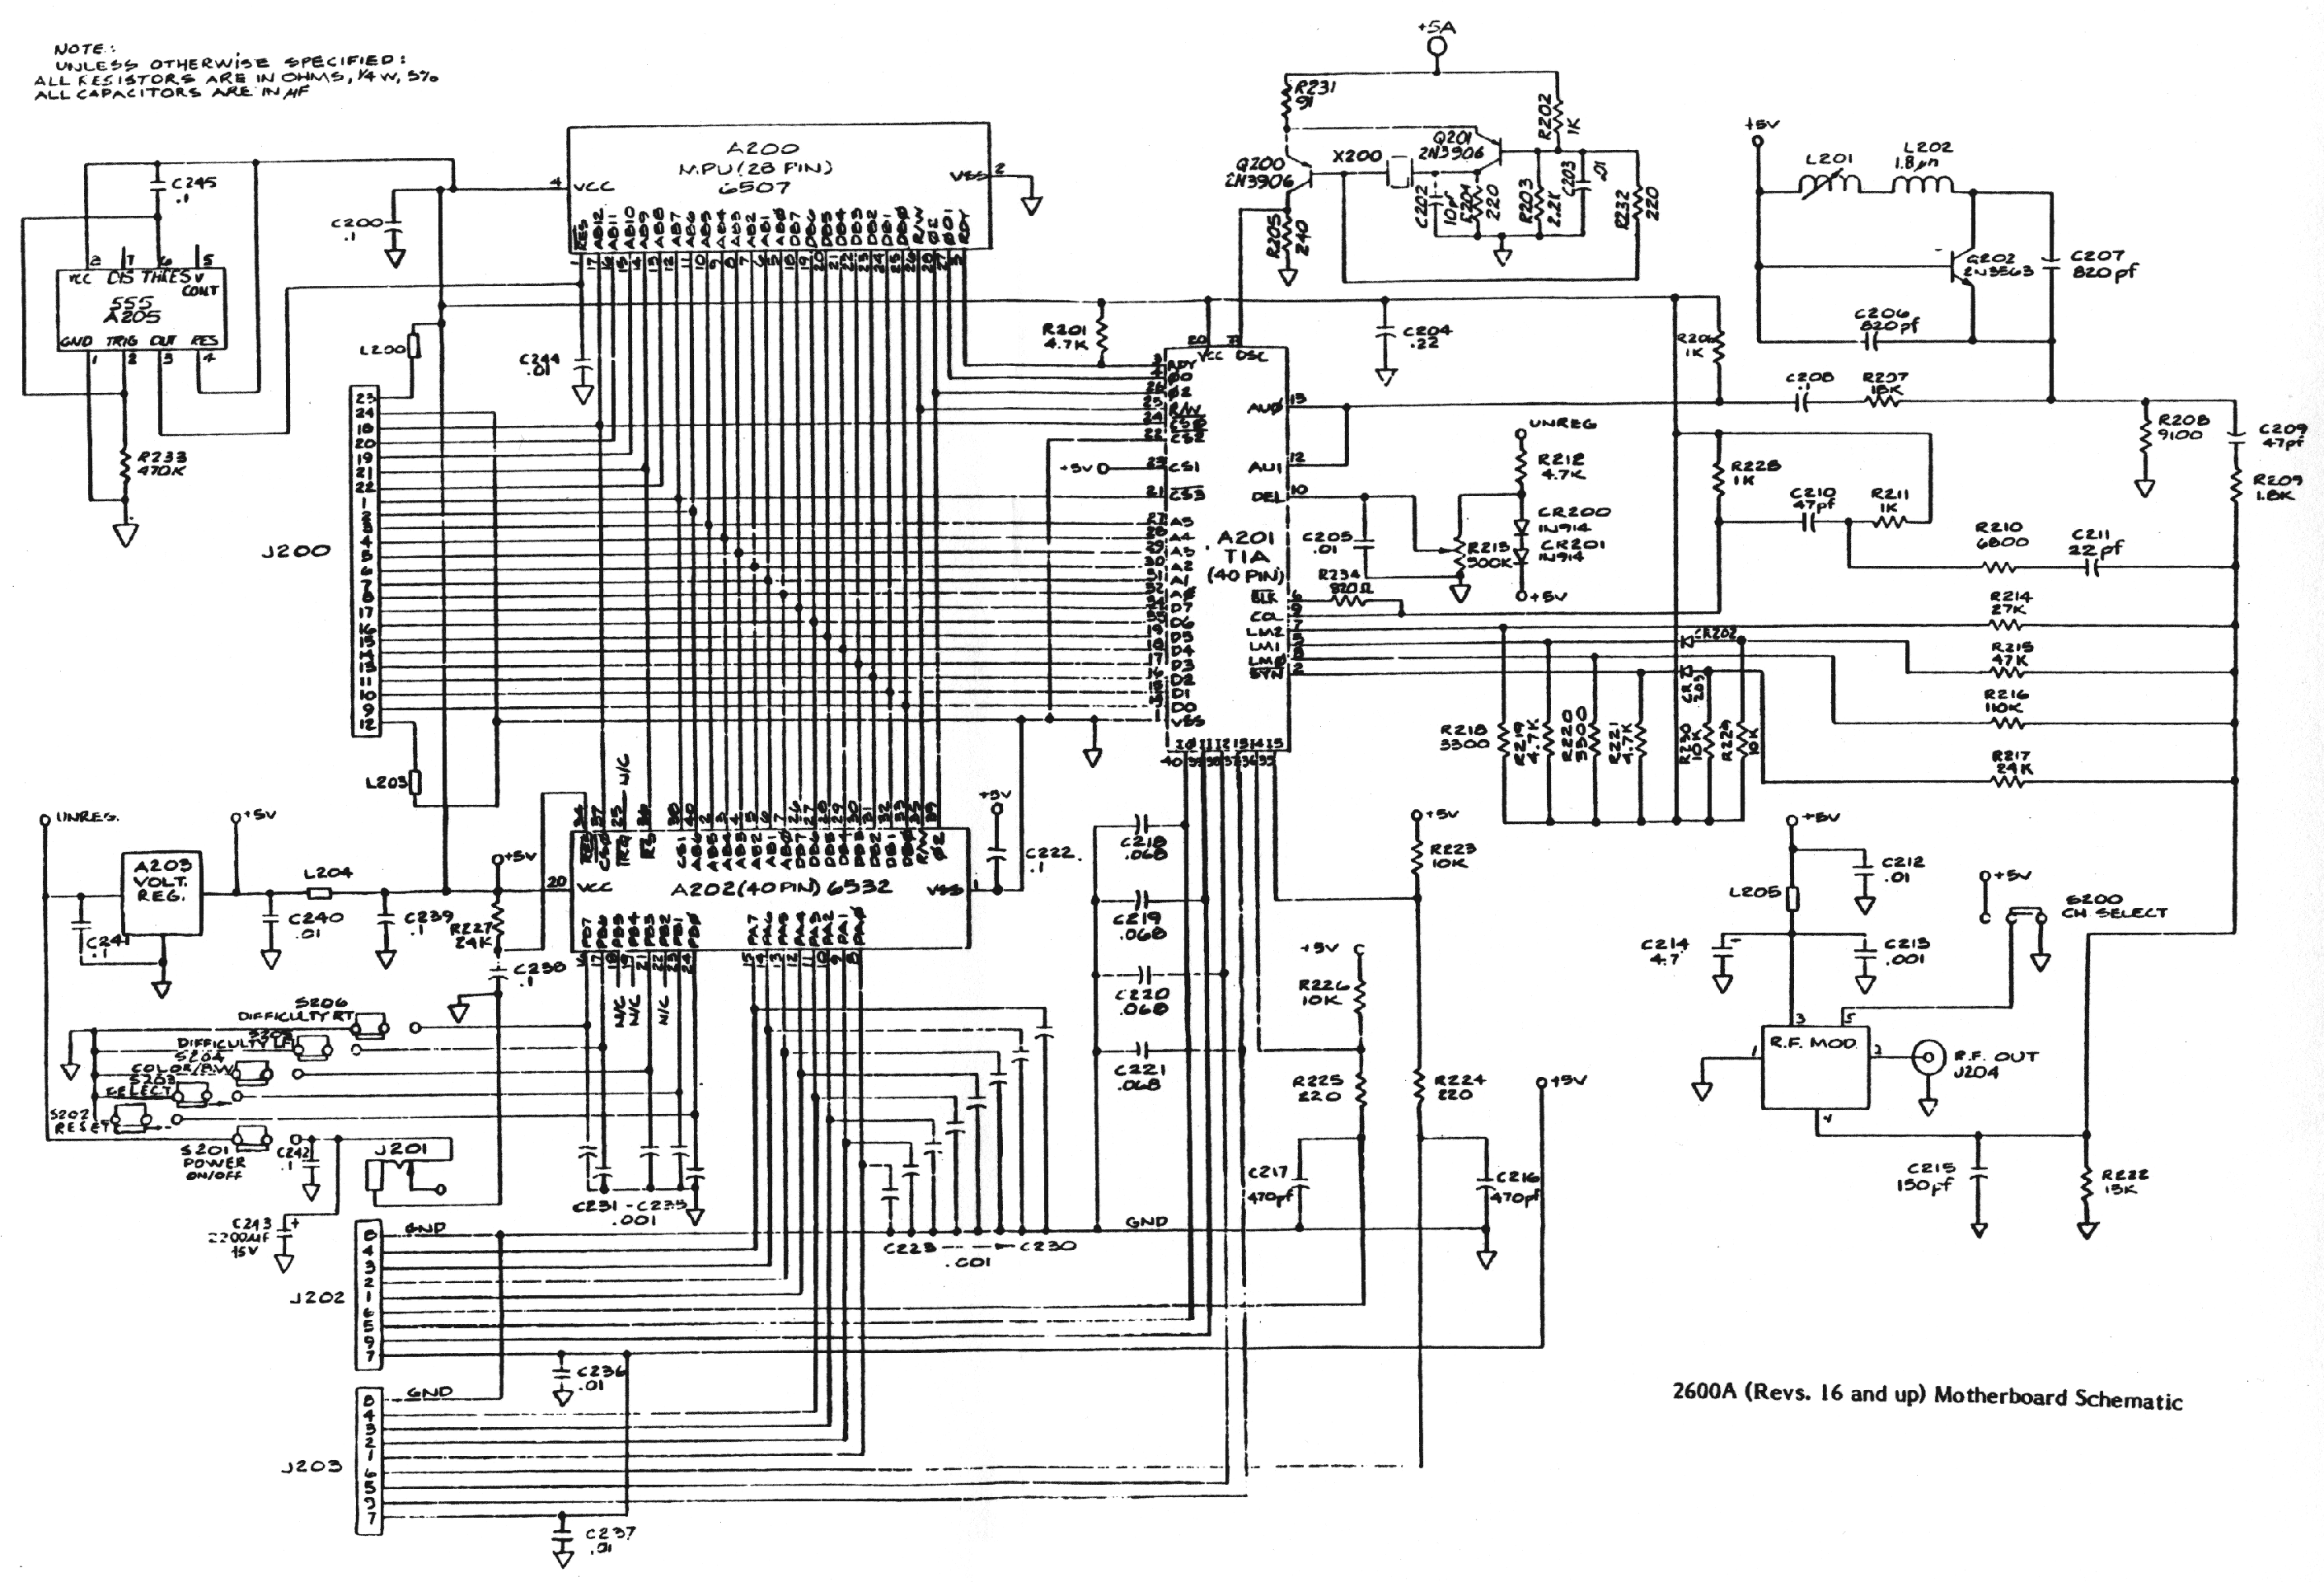 Schematicsconsole Related Schematics Nfg Games Gamesx 360 Engine Diagram 2600a R16 Motherboard Schematic